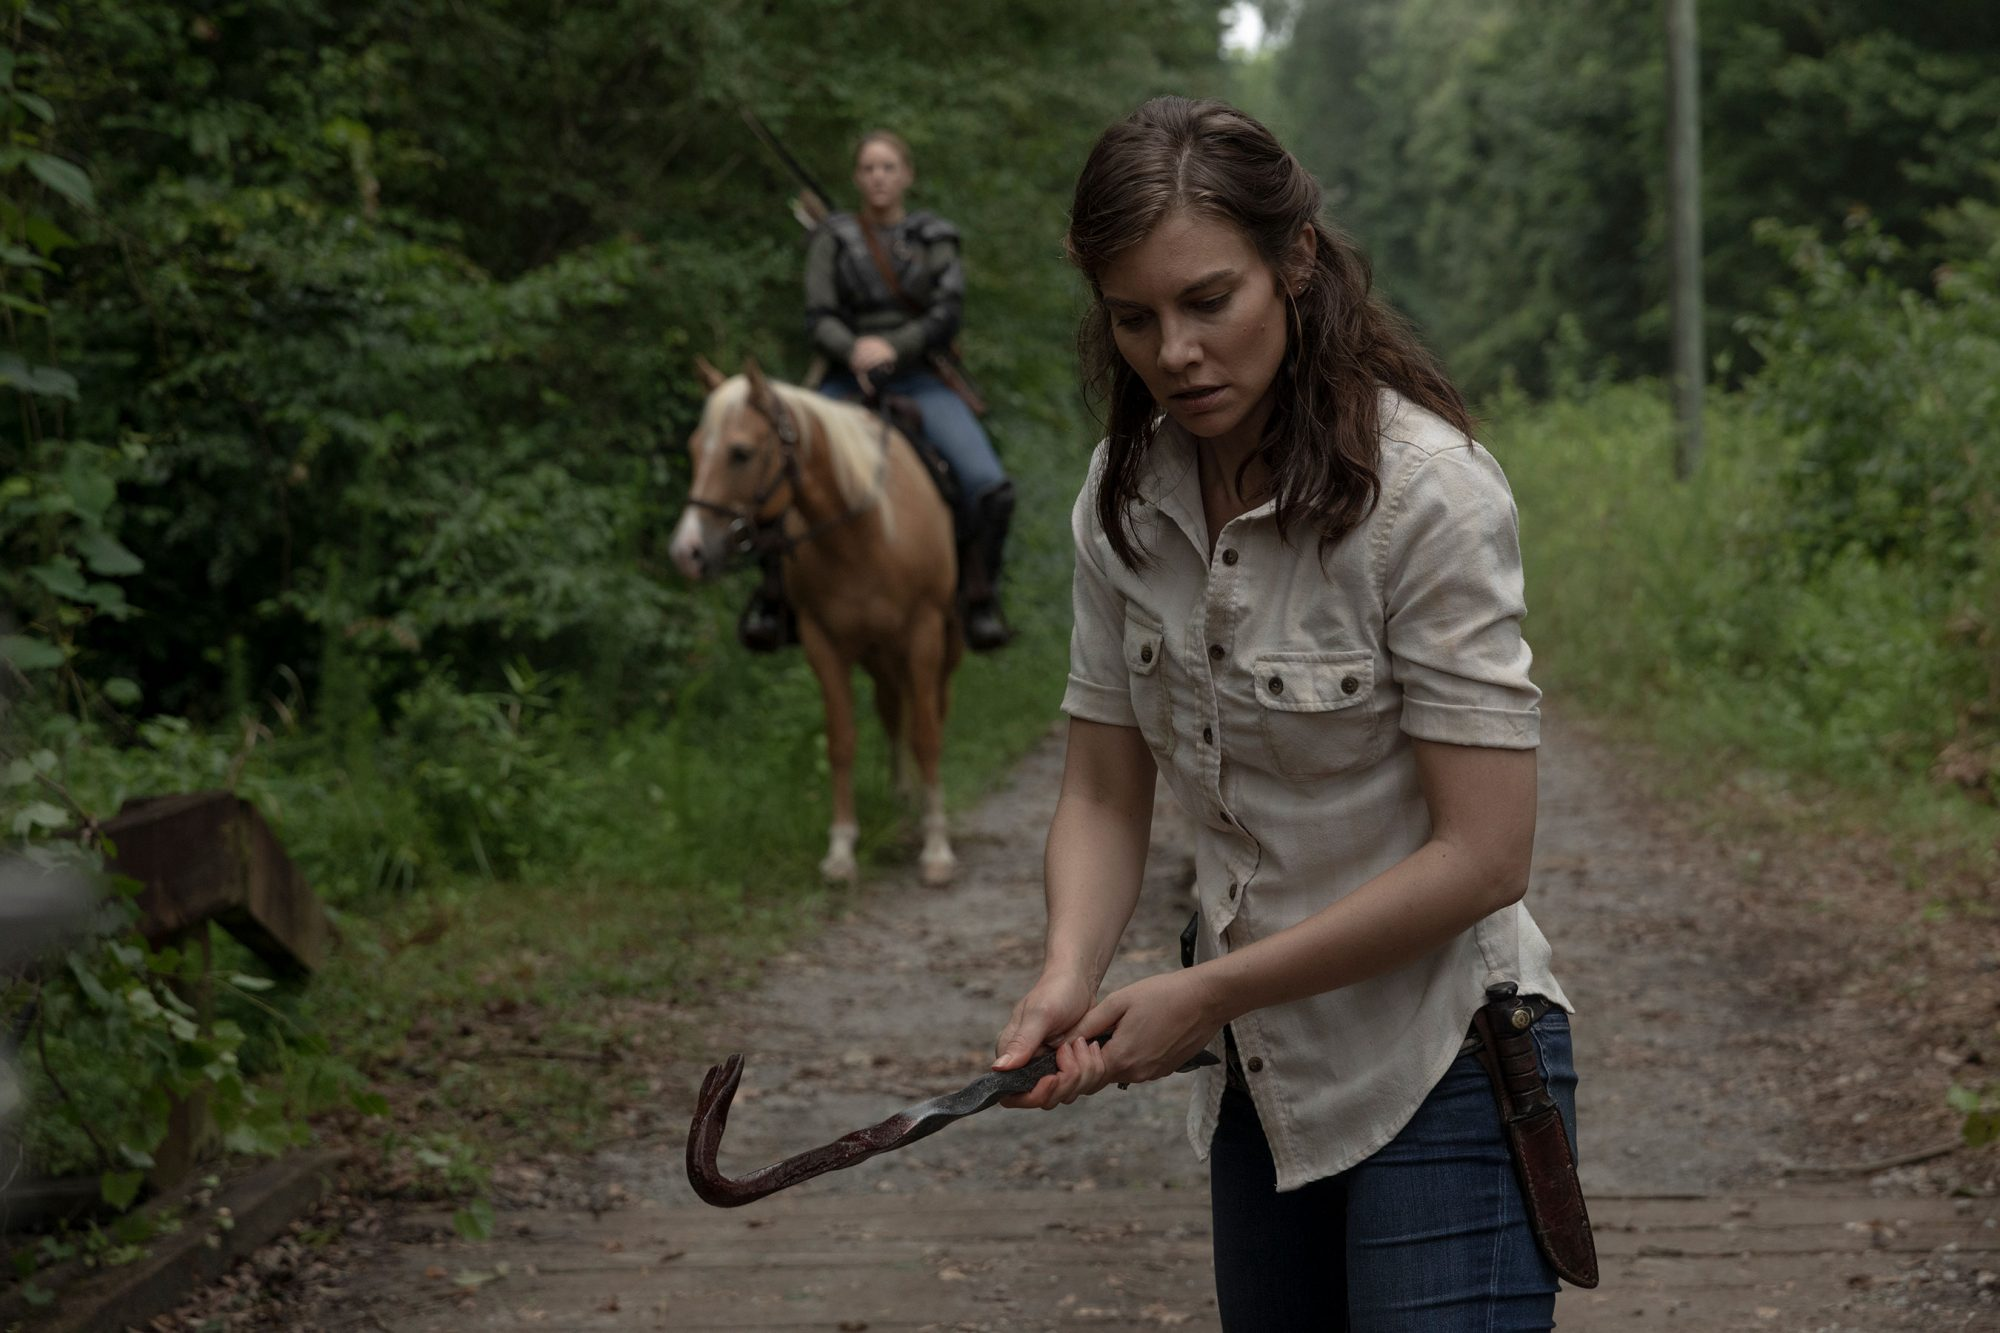 TWD_905_JLD_0623_07796_RT